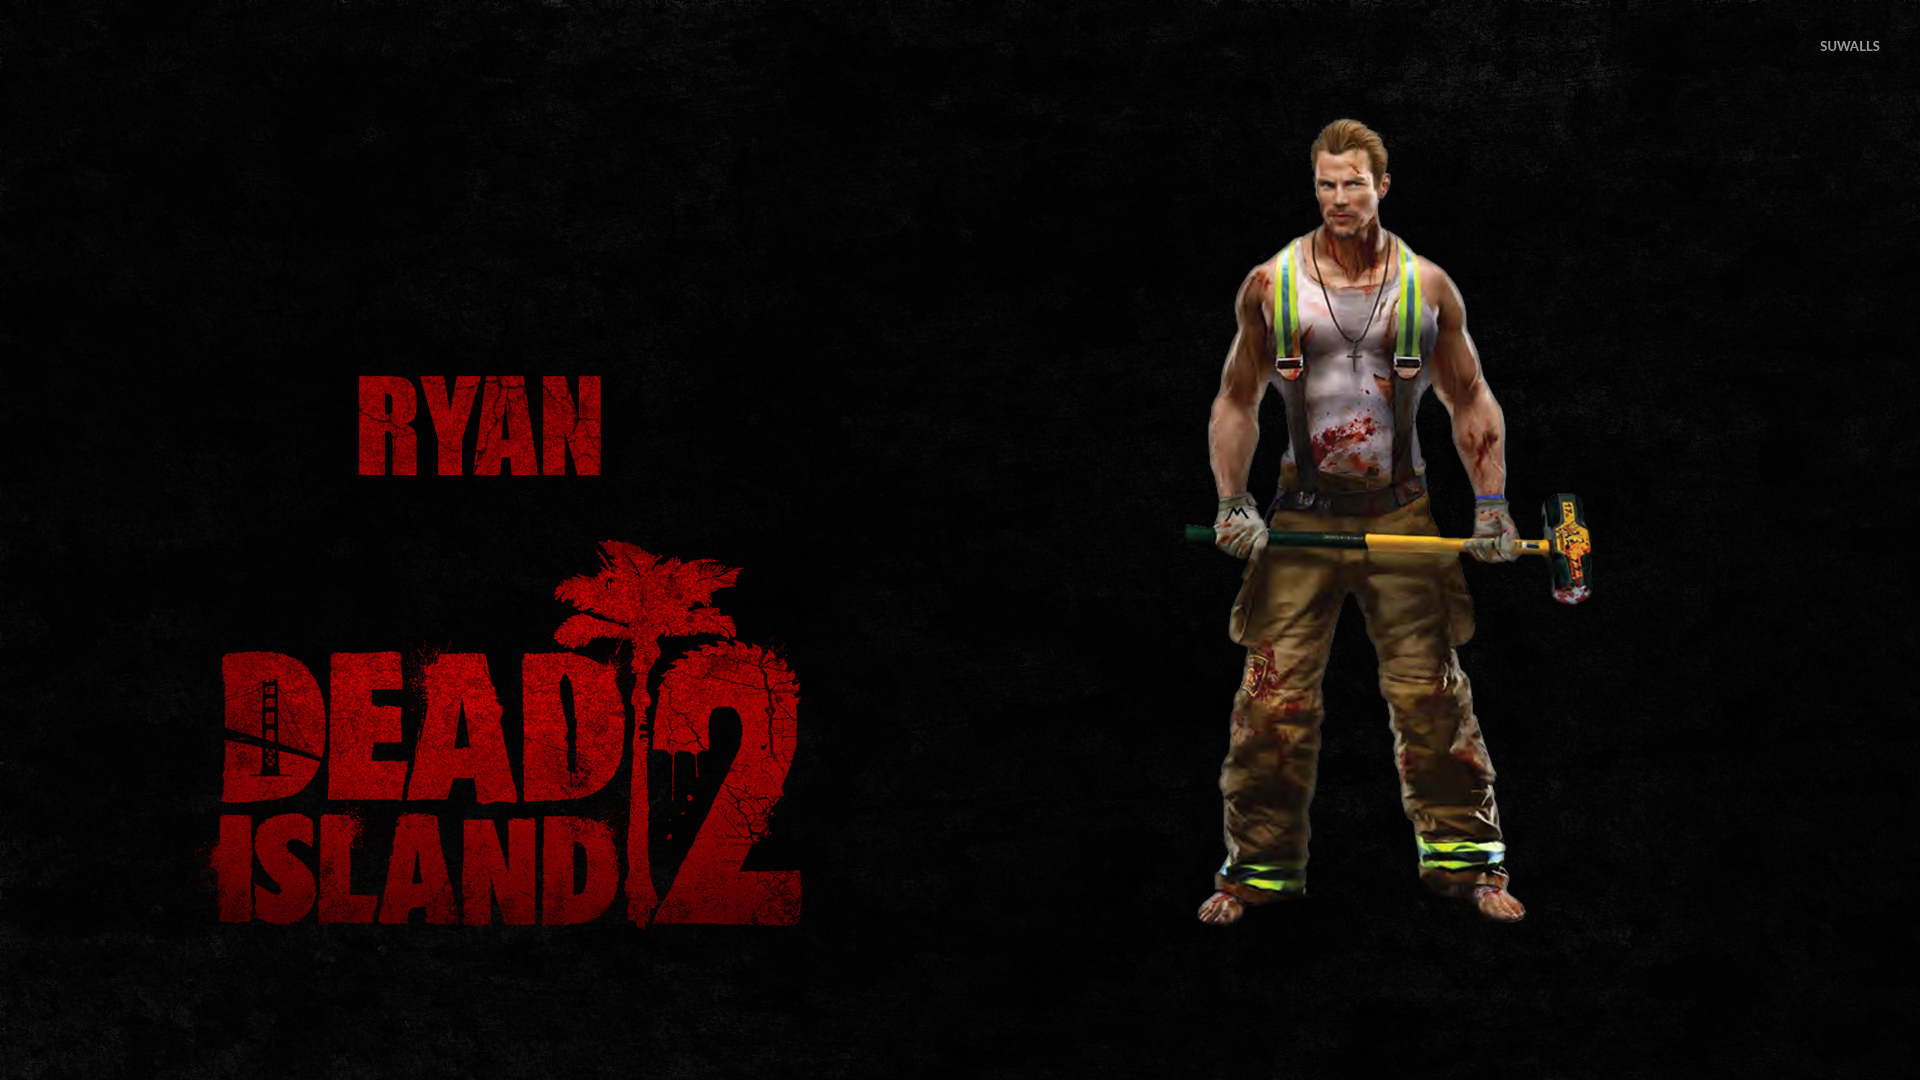 Ryan - Dead Island 2 wallpaper - Game wallpapers - #50179